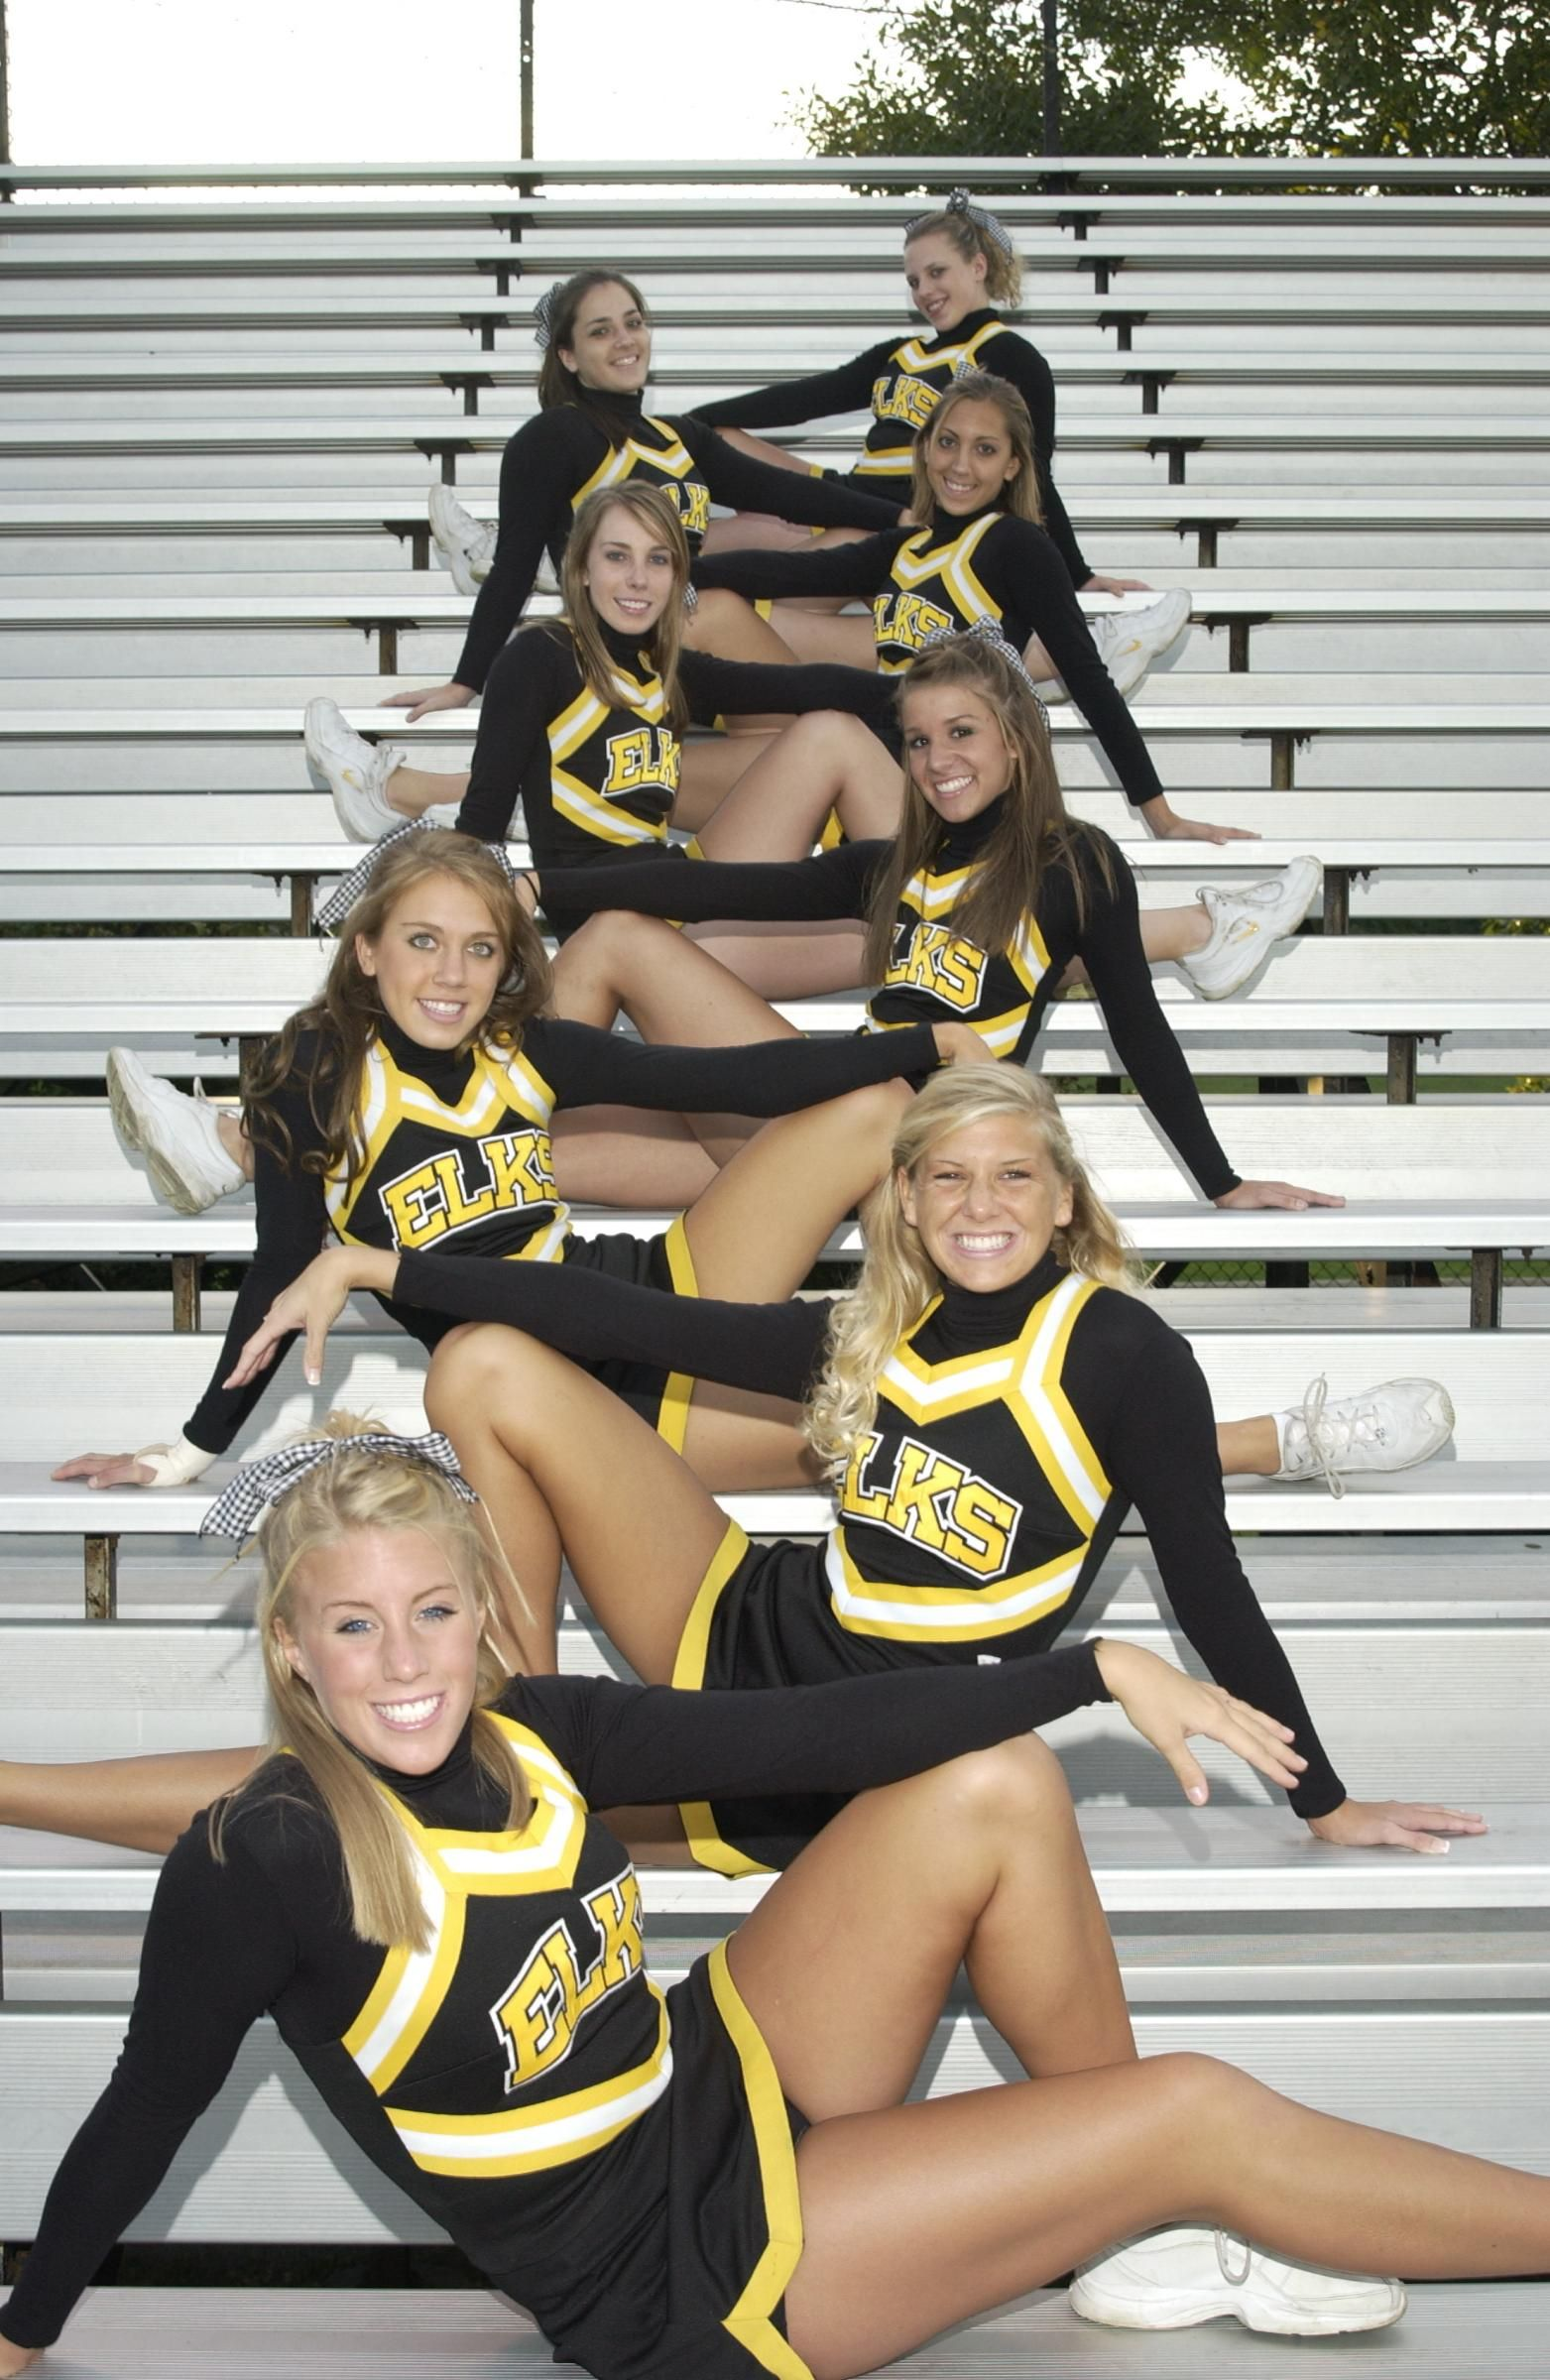 sexy high shcool cheerleaders